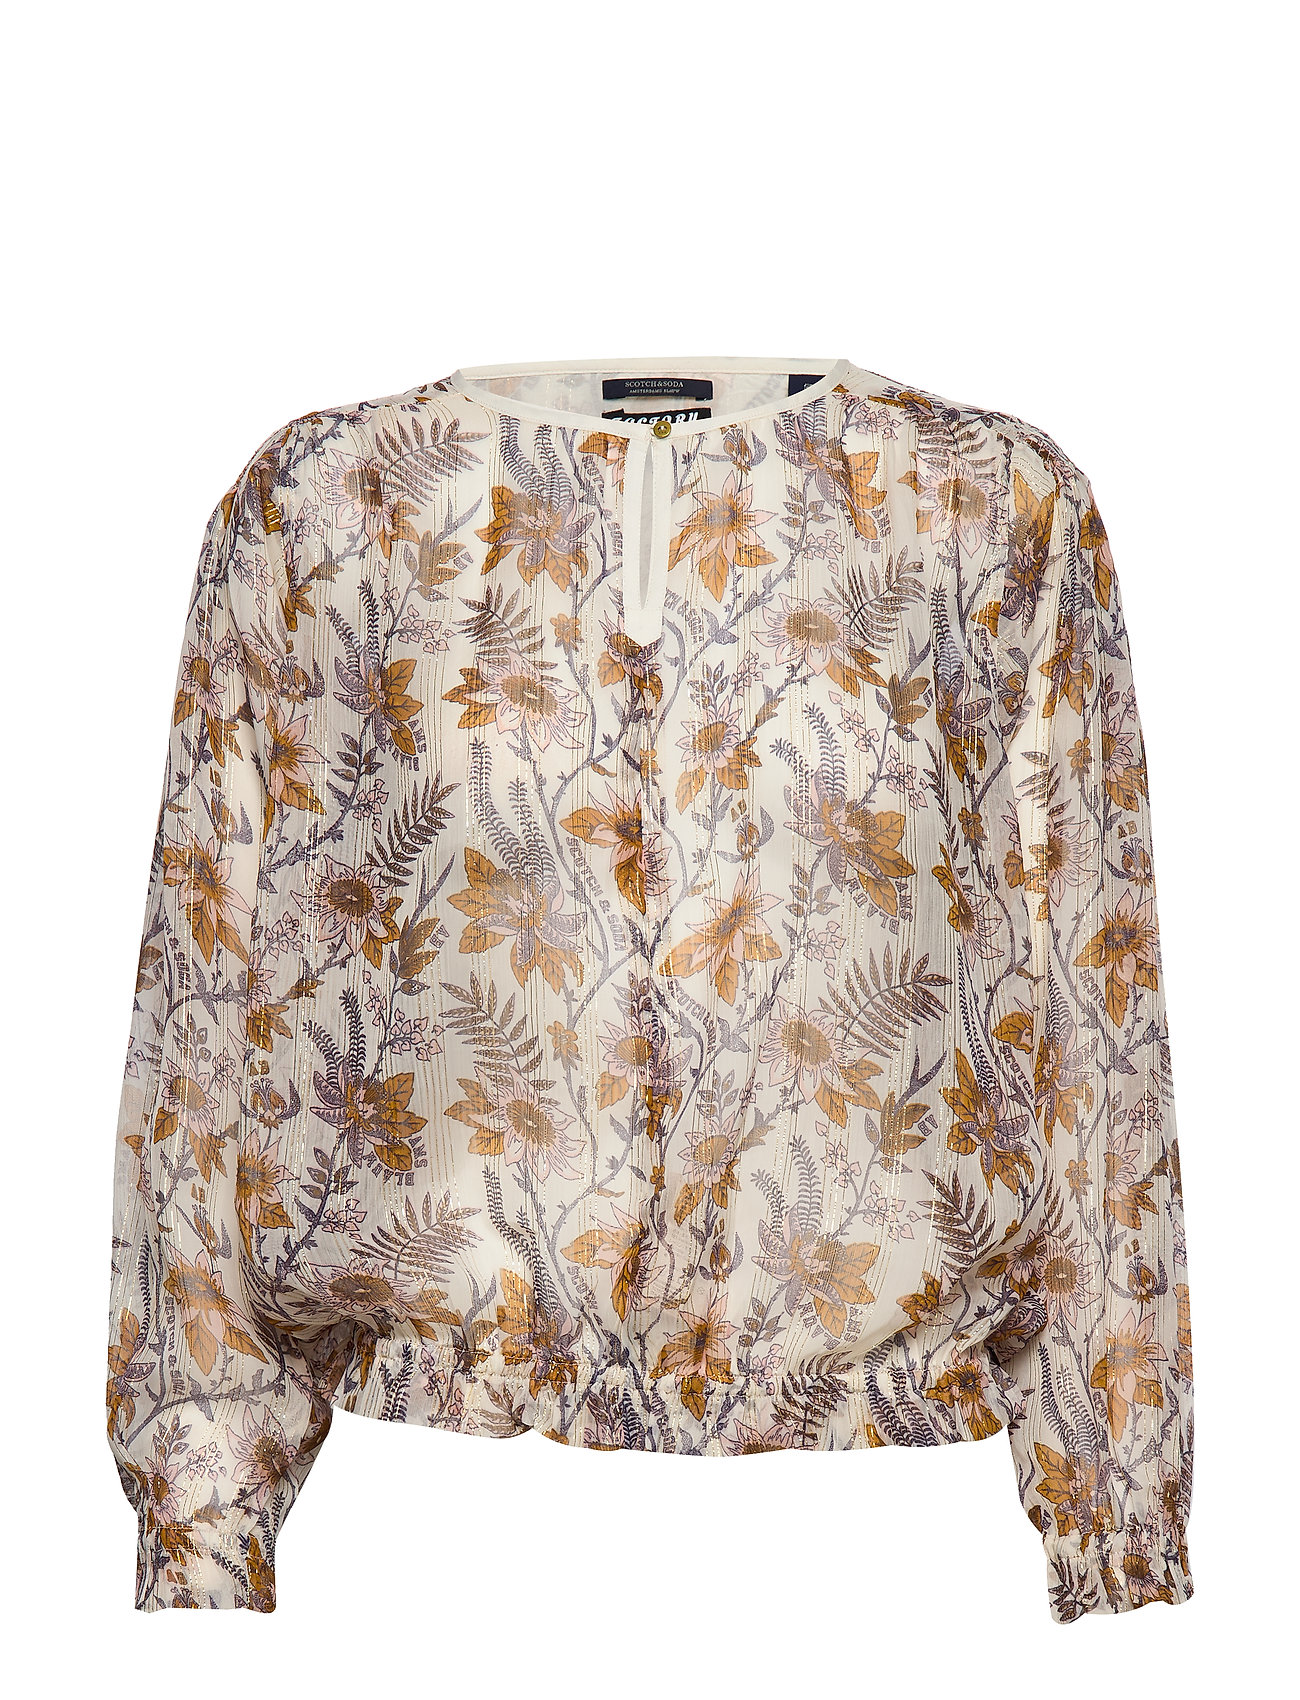 Scotch & Soda Drapey top in floral prints with elastic detailing - COMBO A